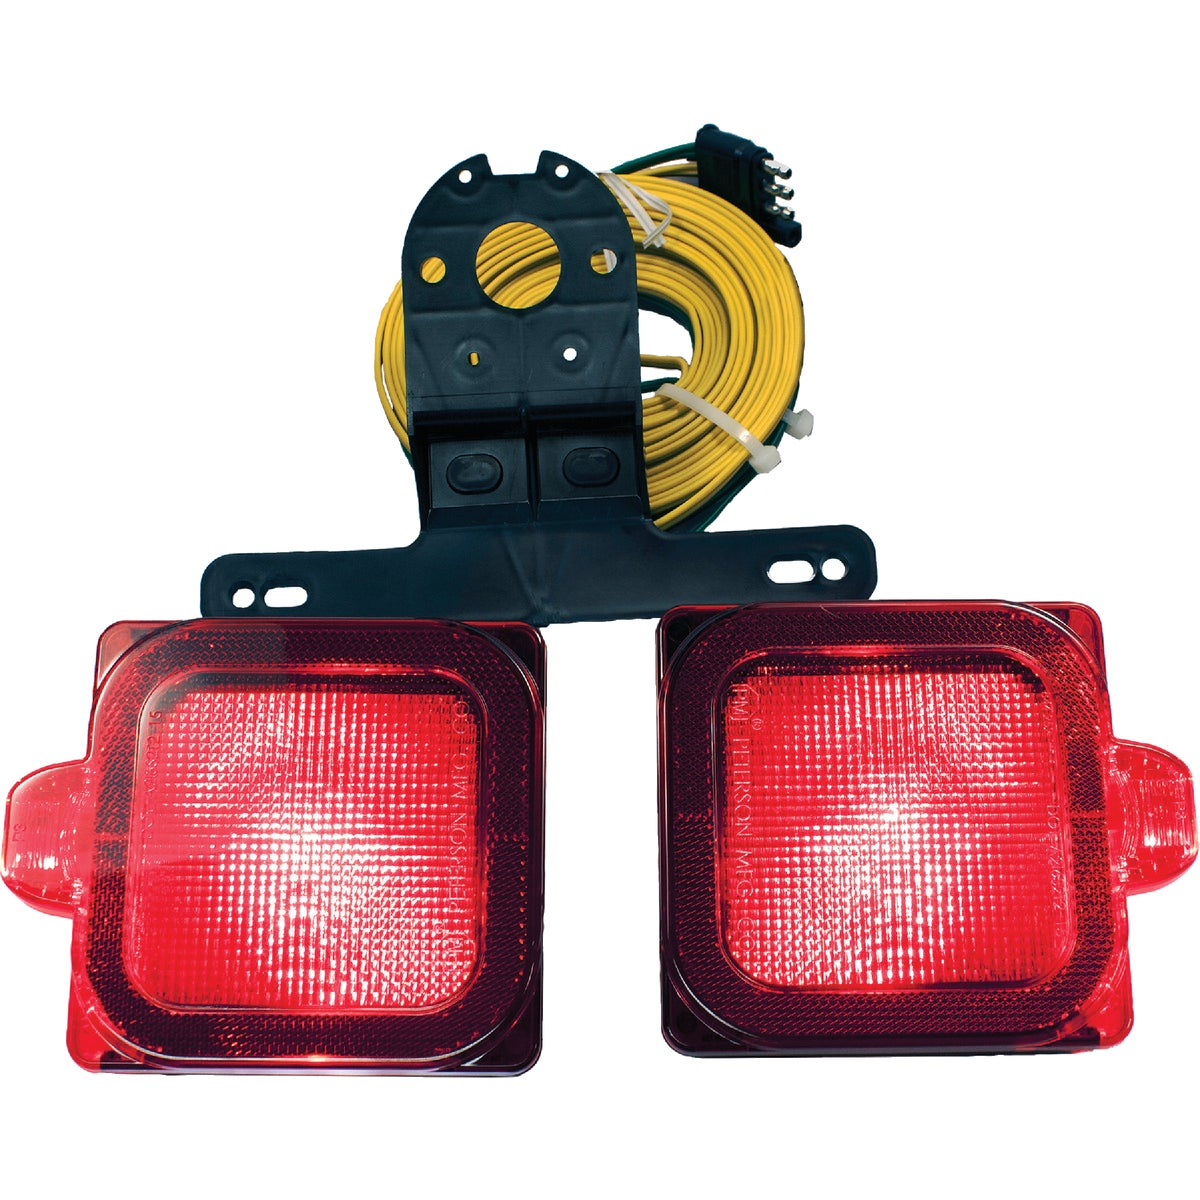 LED TRAIL REAR LIGHT KIT